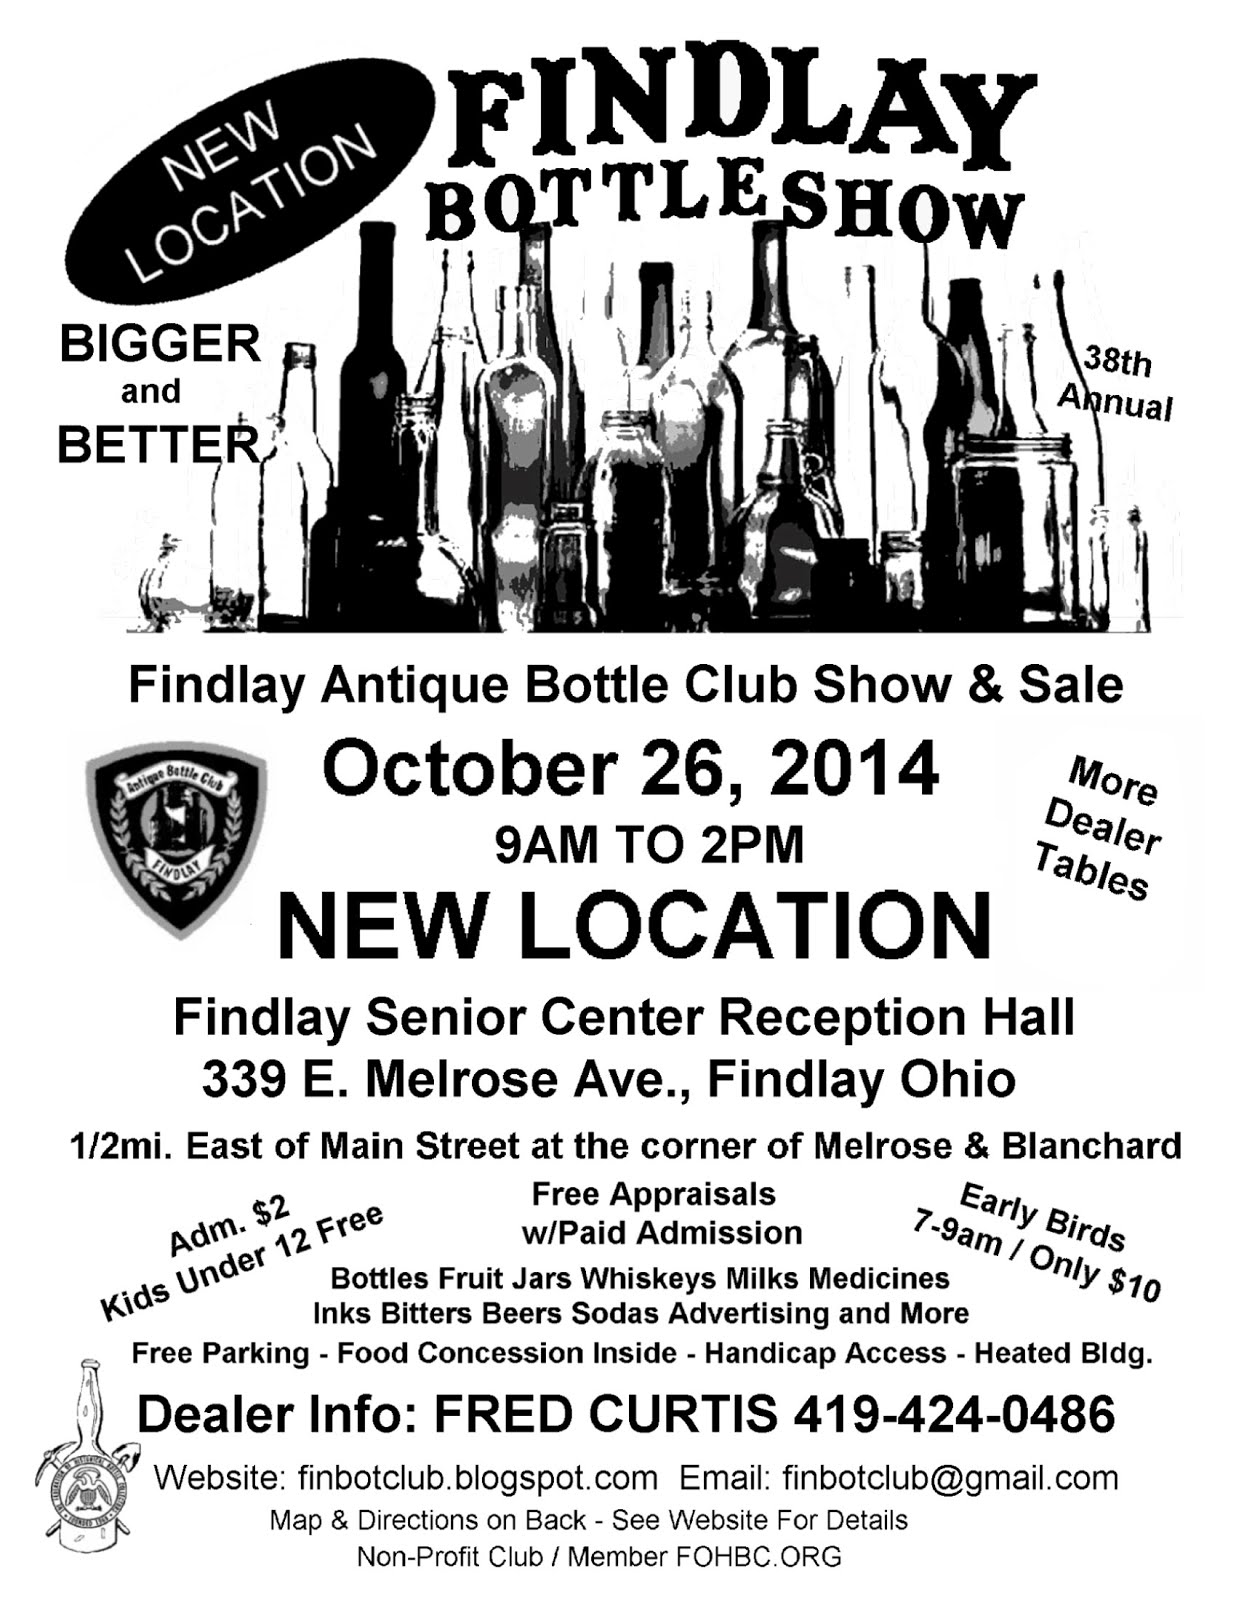 2014 Findlay Bottle Show Info: